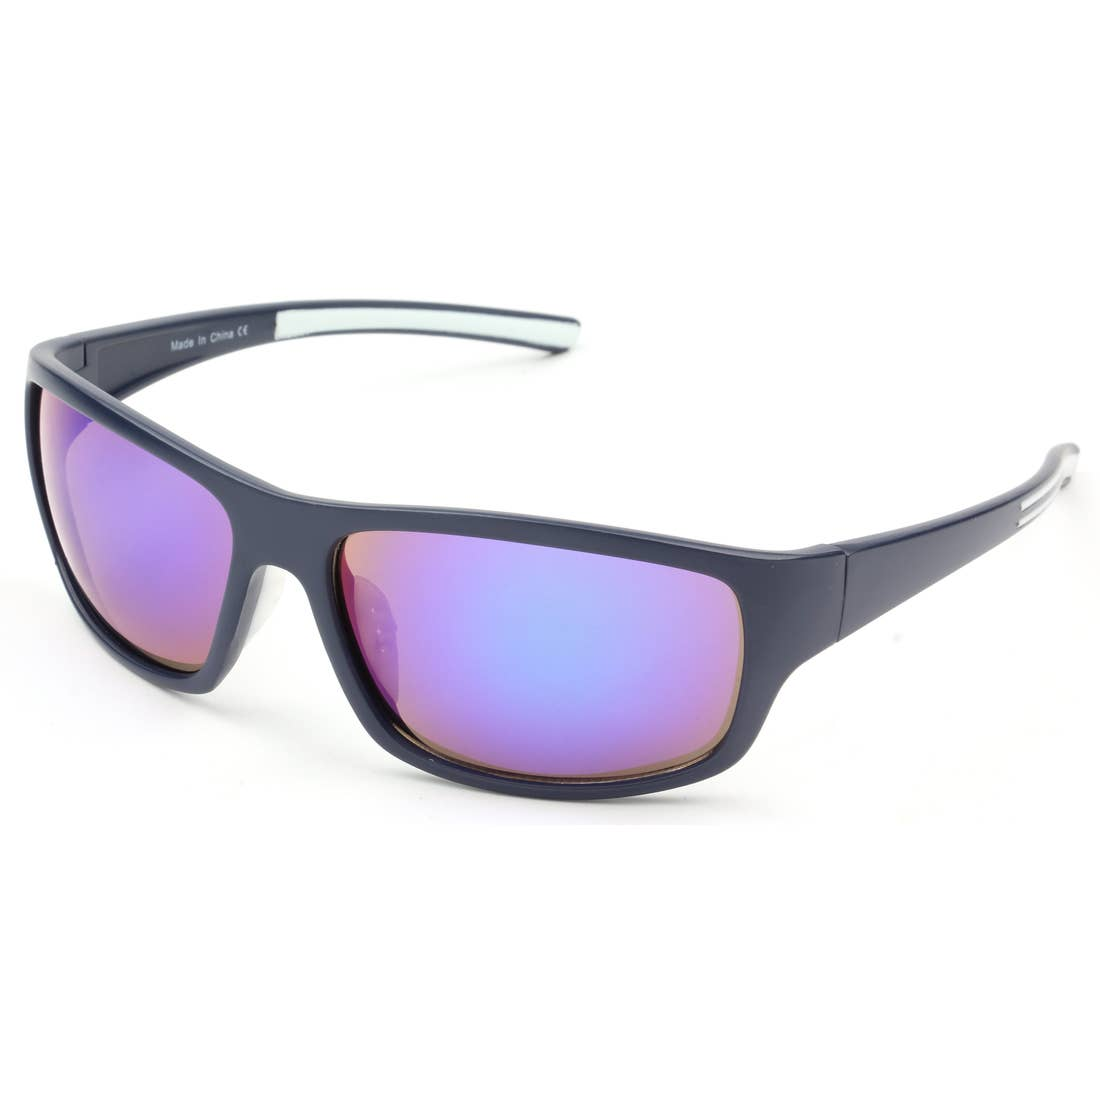 Men's Rectangular Sunglasses